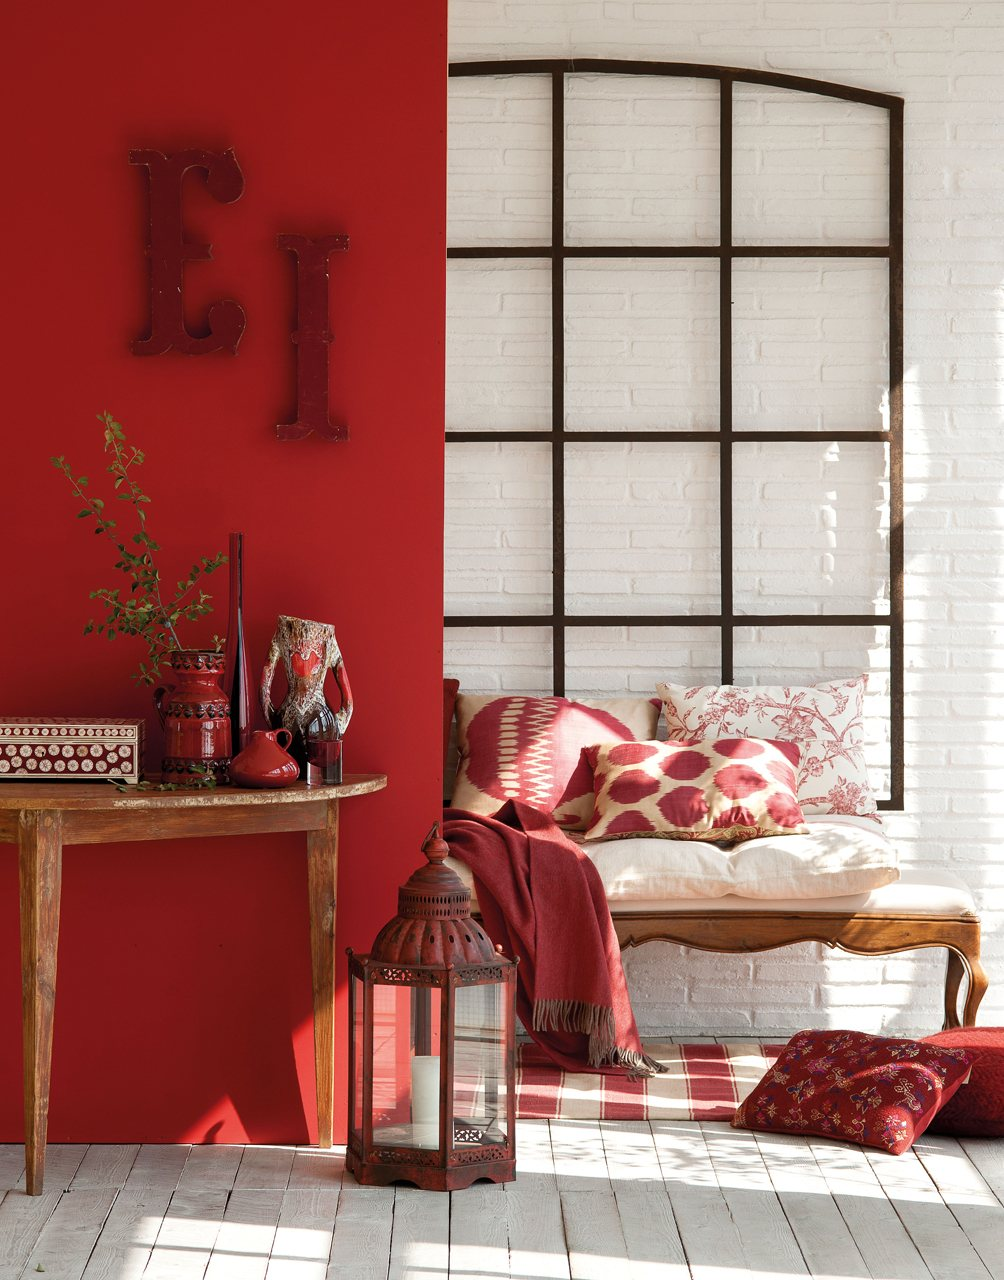 Ambiente con pared roja. Destacar una pared.